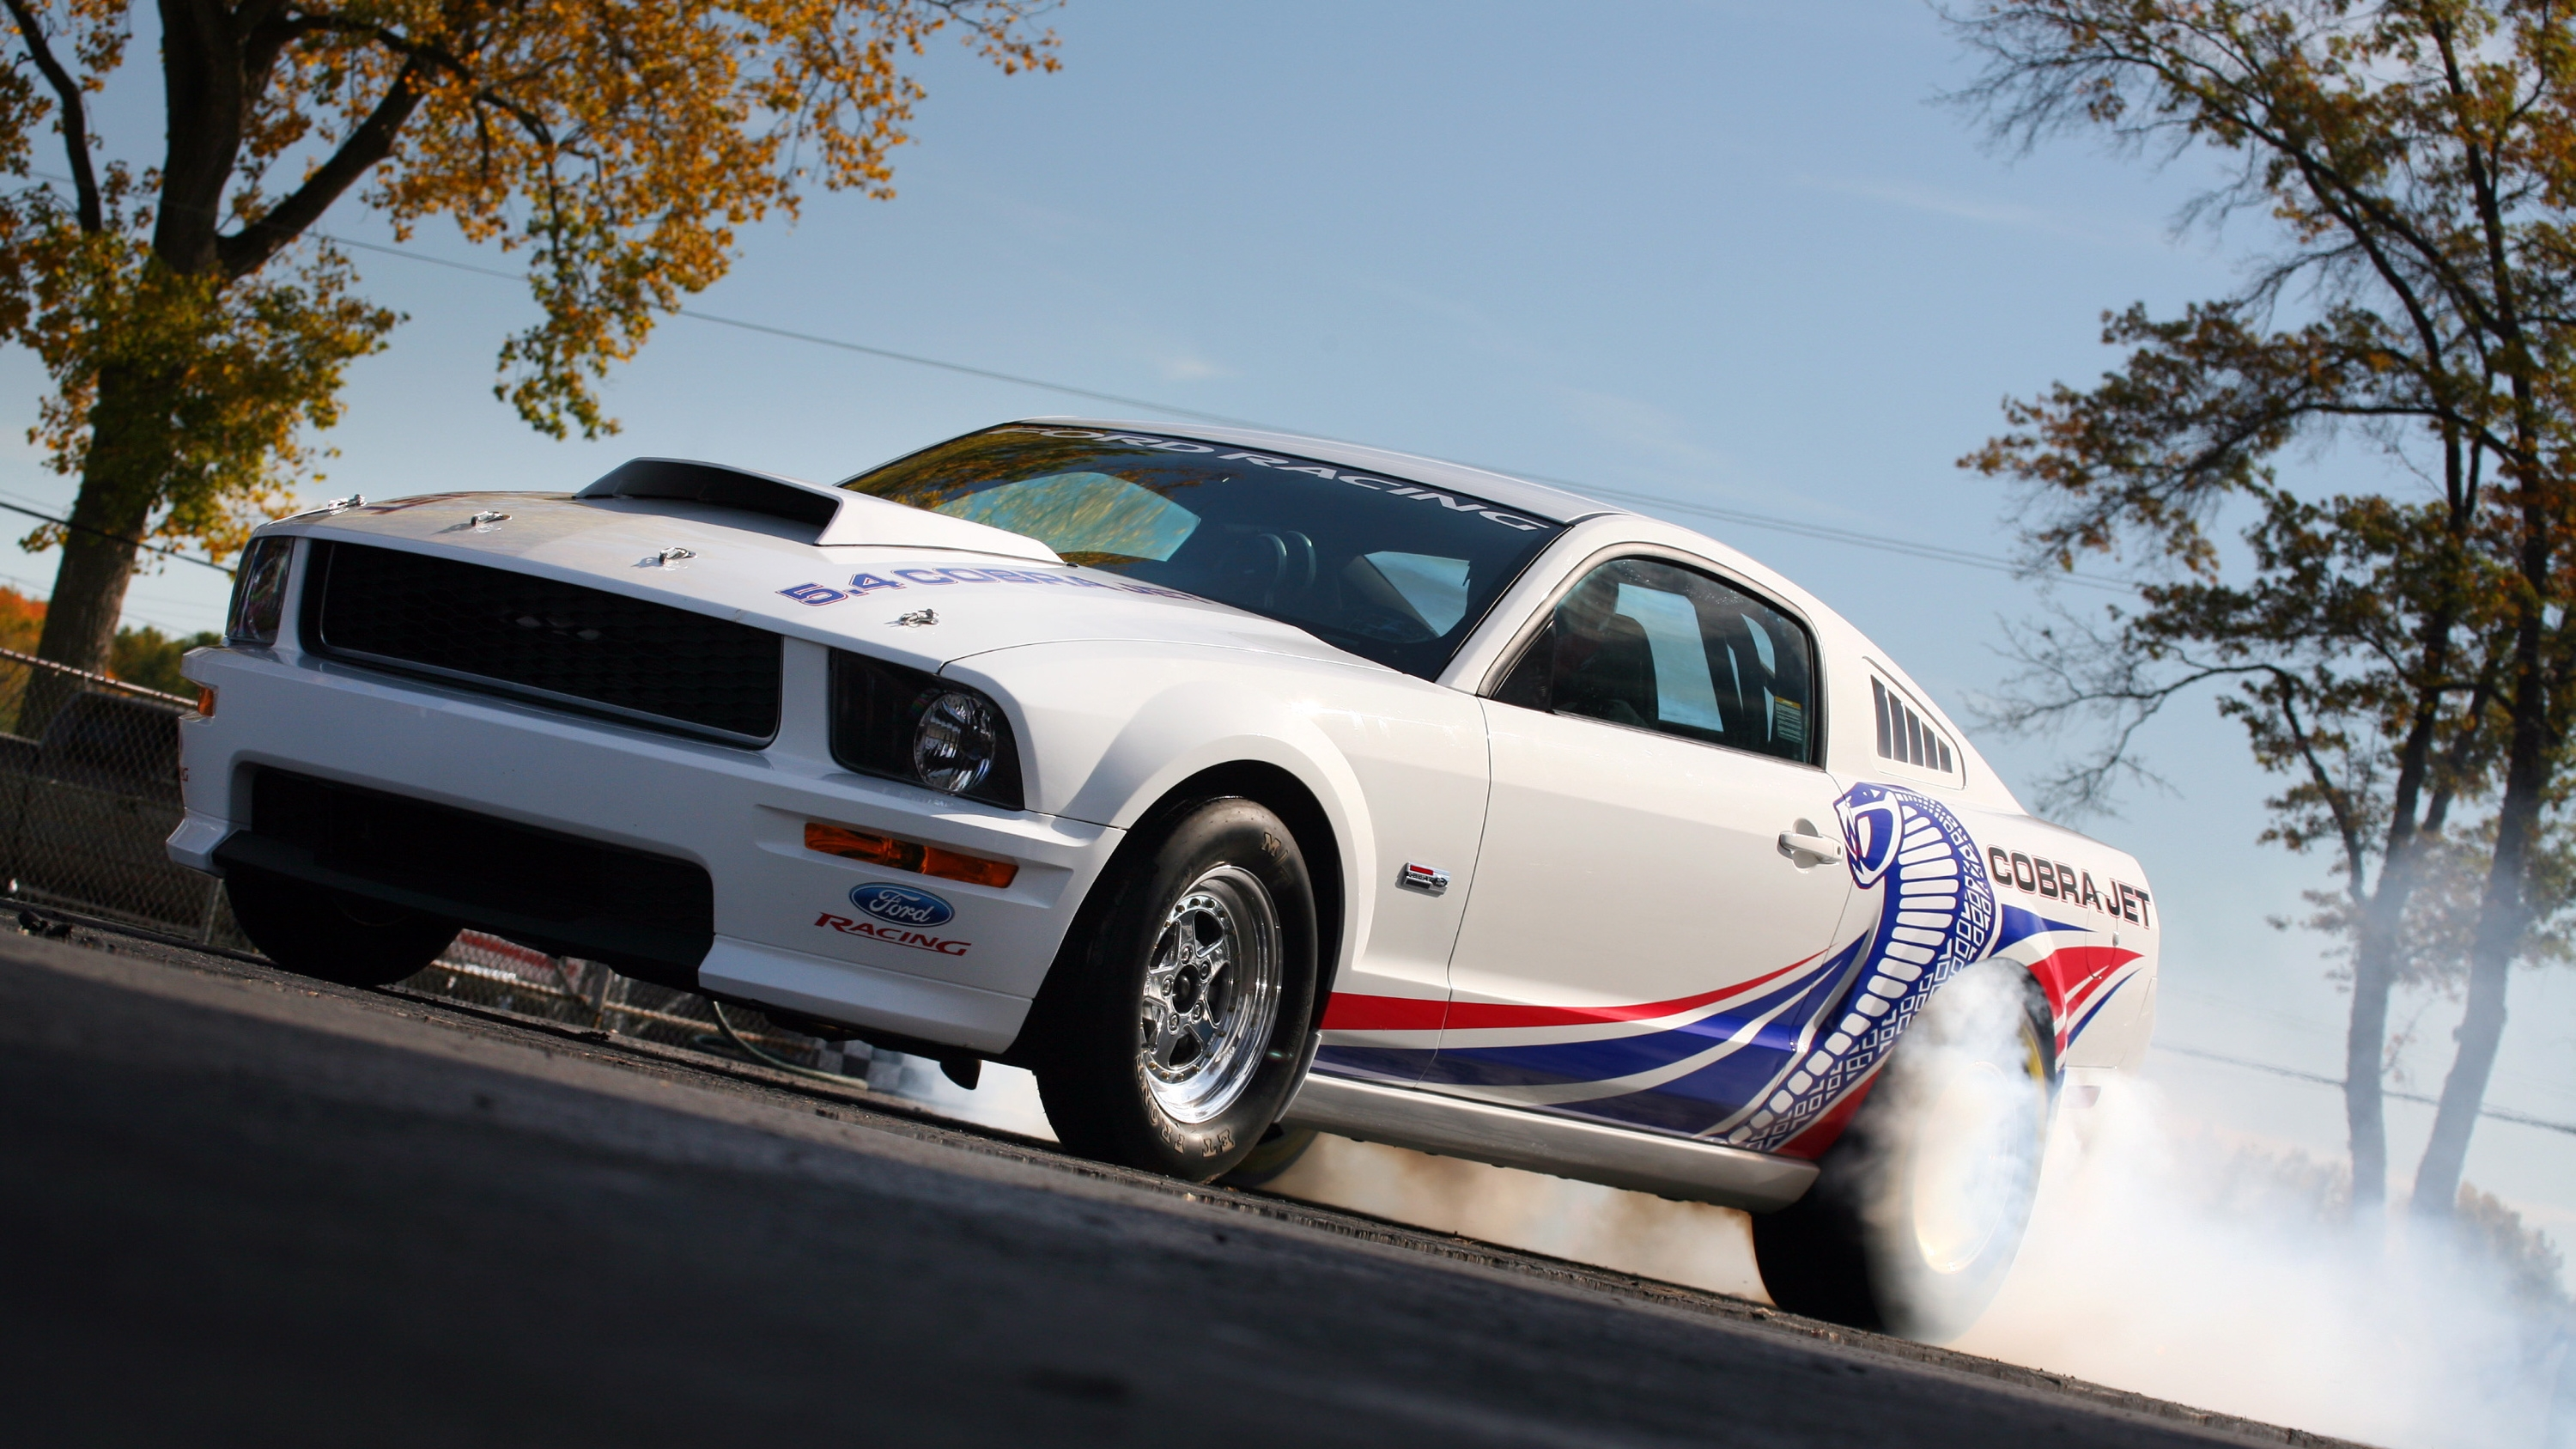 Ford Mustang Cobra Jet HD Wallpaper Background Image